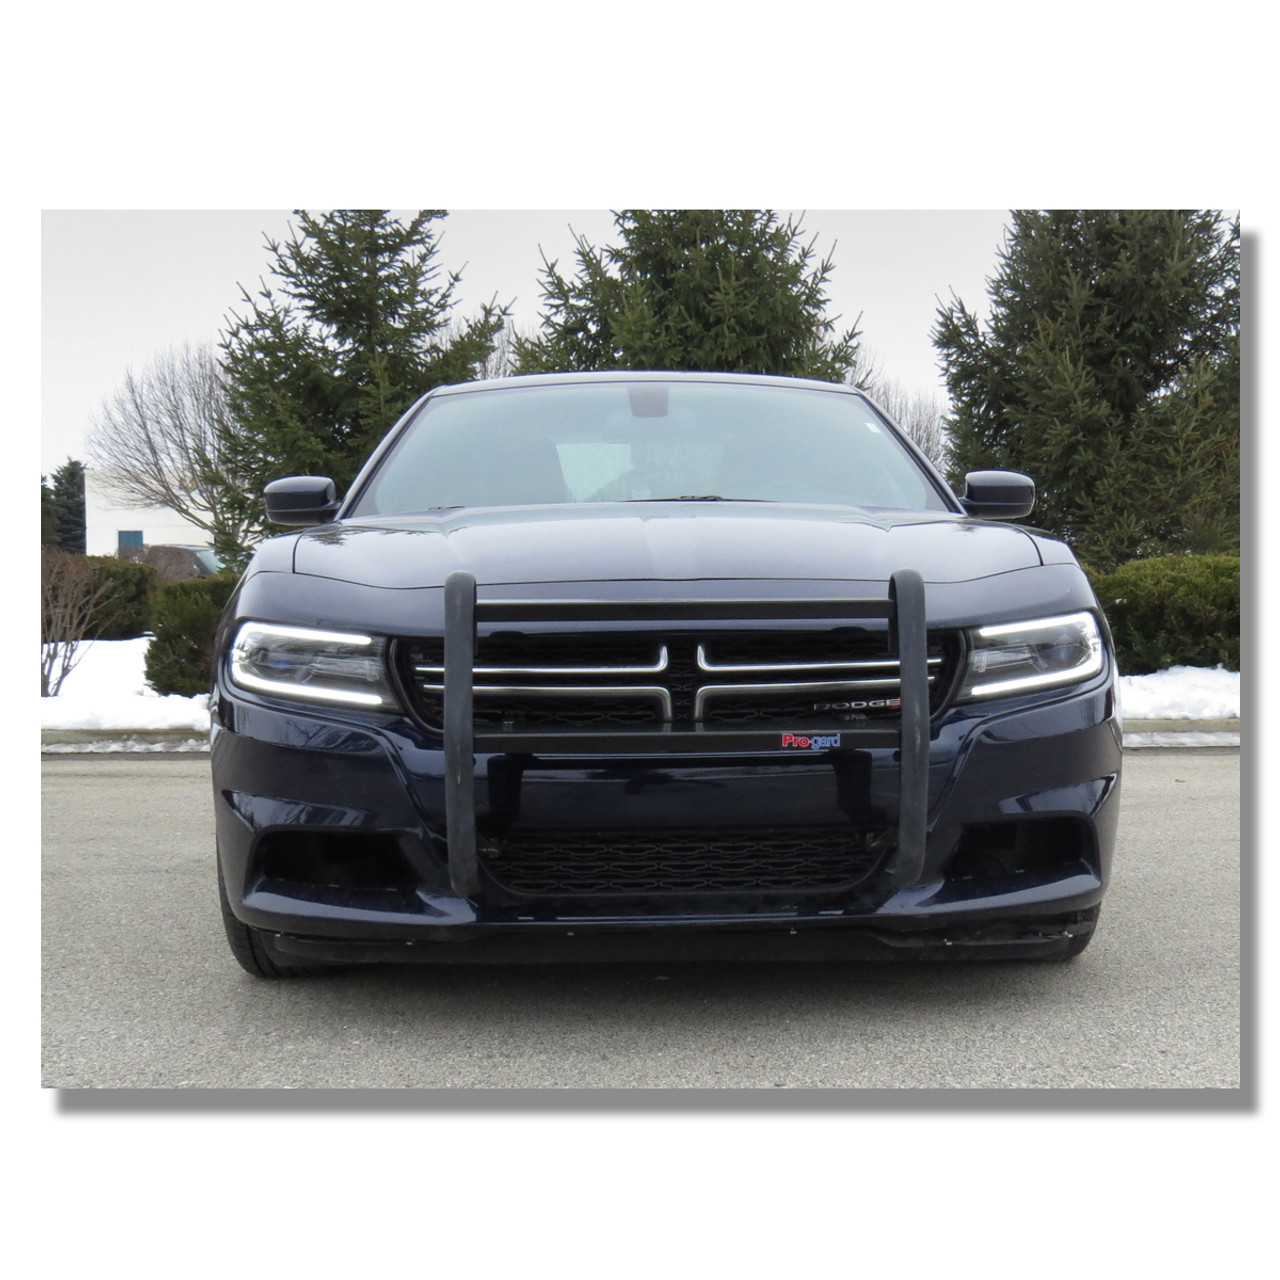 Charger 2011+ Police Push Bumper Grill Guard by Progard